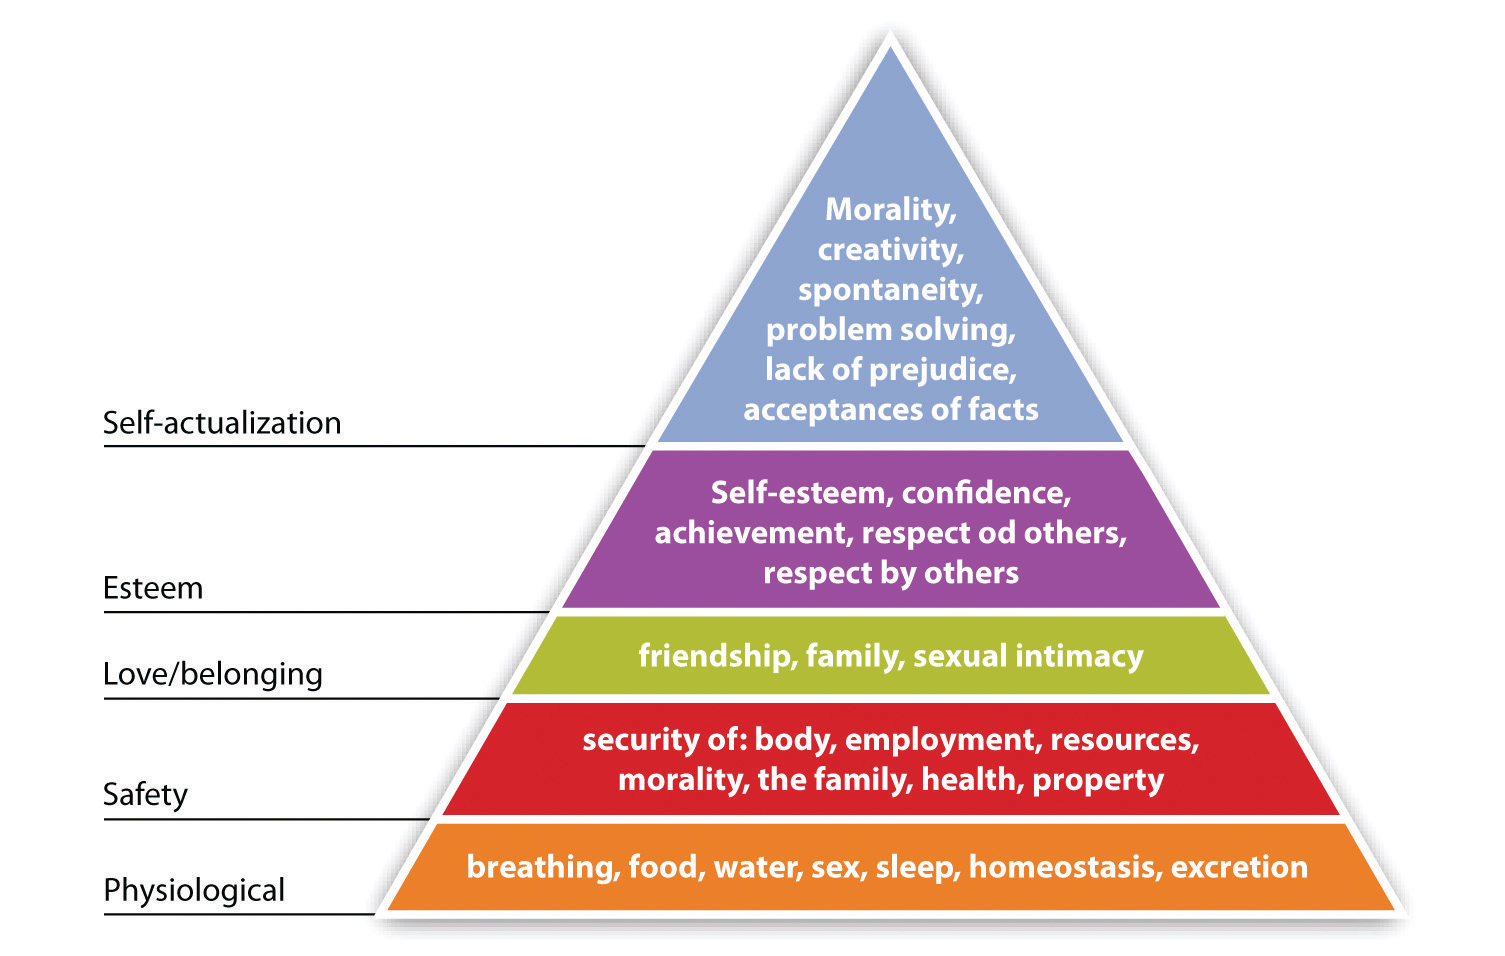 mayo and maslow The two motivational theories that can be seen in this video are mayo's theory of human relations and maslow and herzberg's theory of human needs (latham, 2007) mayo's theory of human relations is directed towards an employee's social needs.